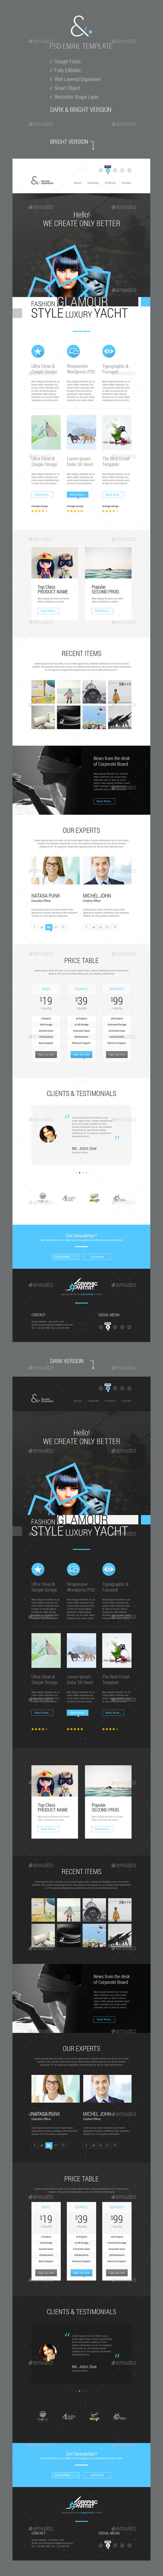 GraphicRiver And Corporate Email Template 9078547